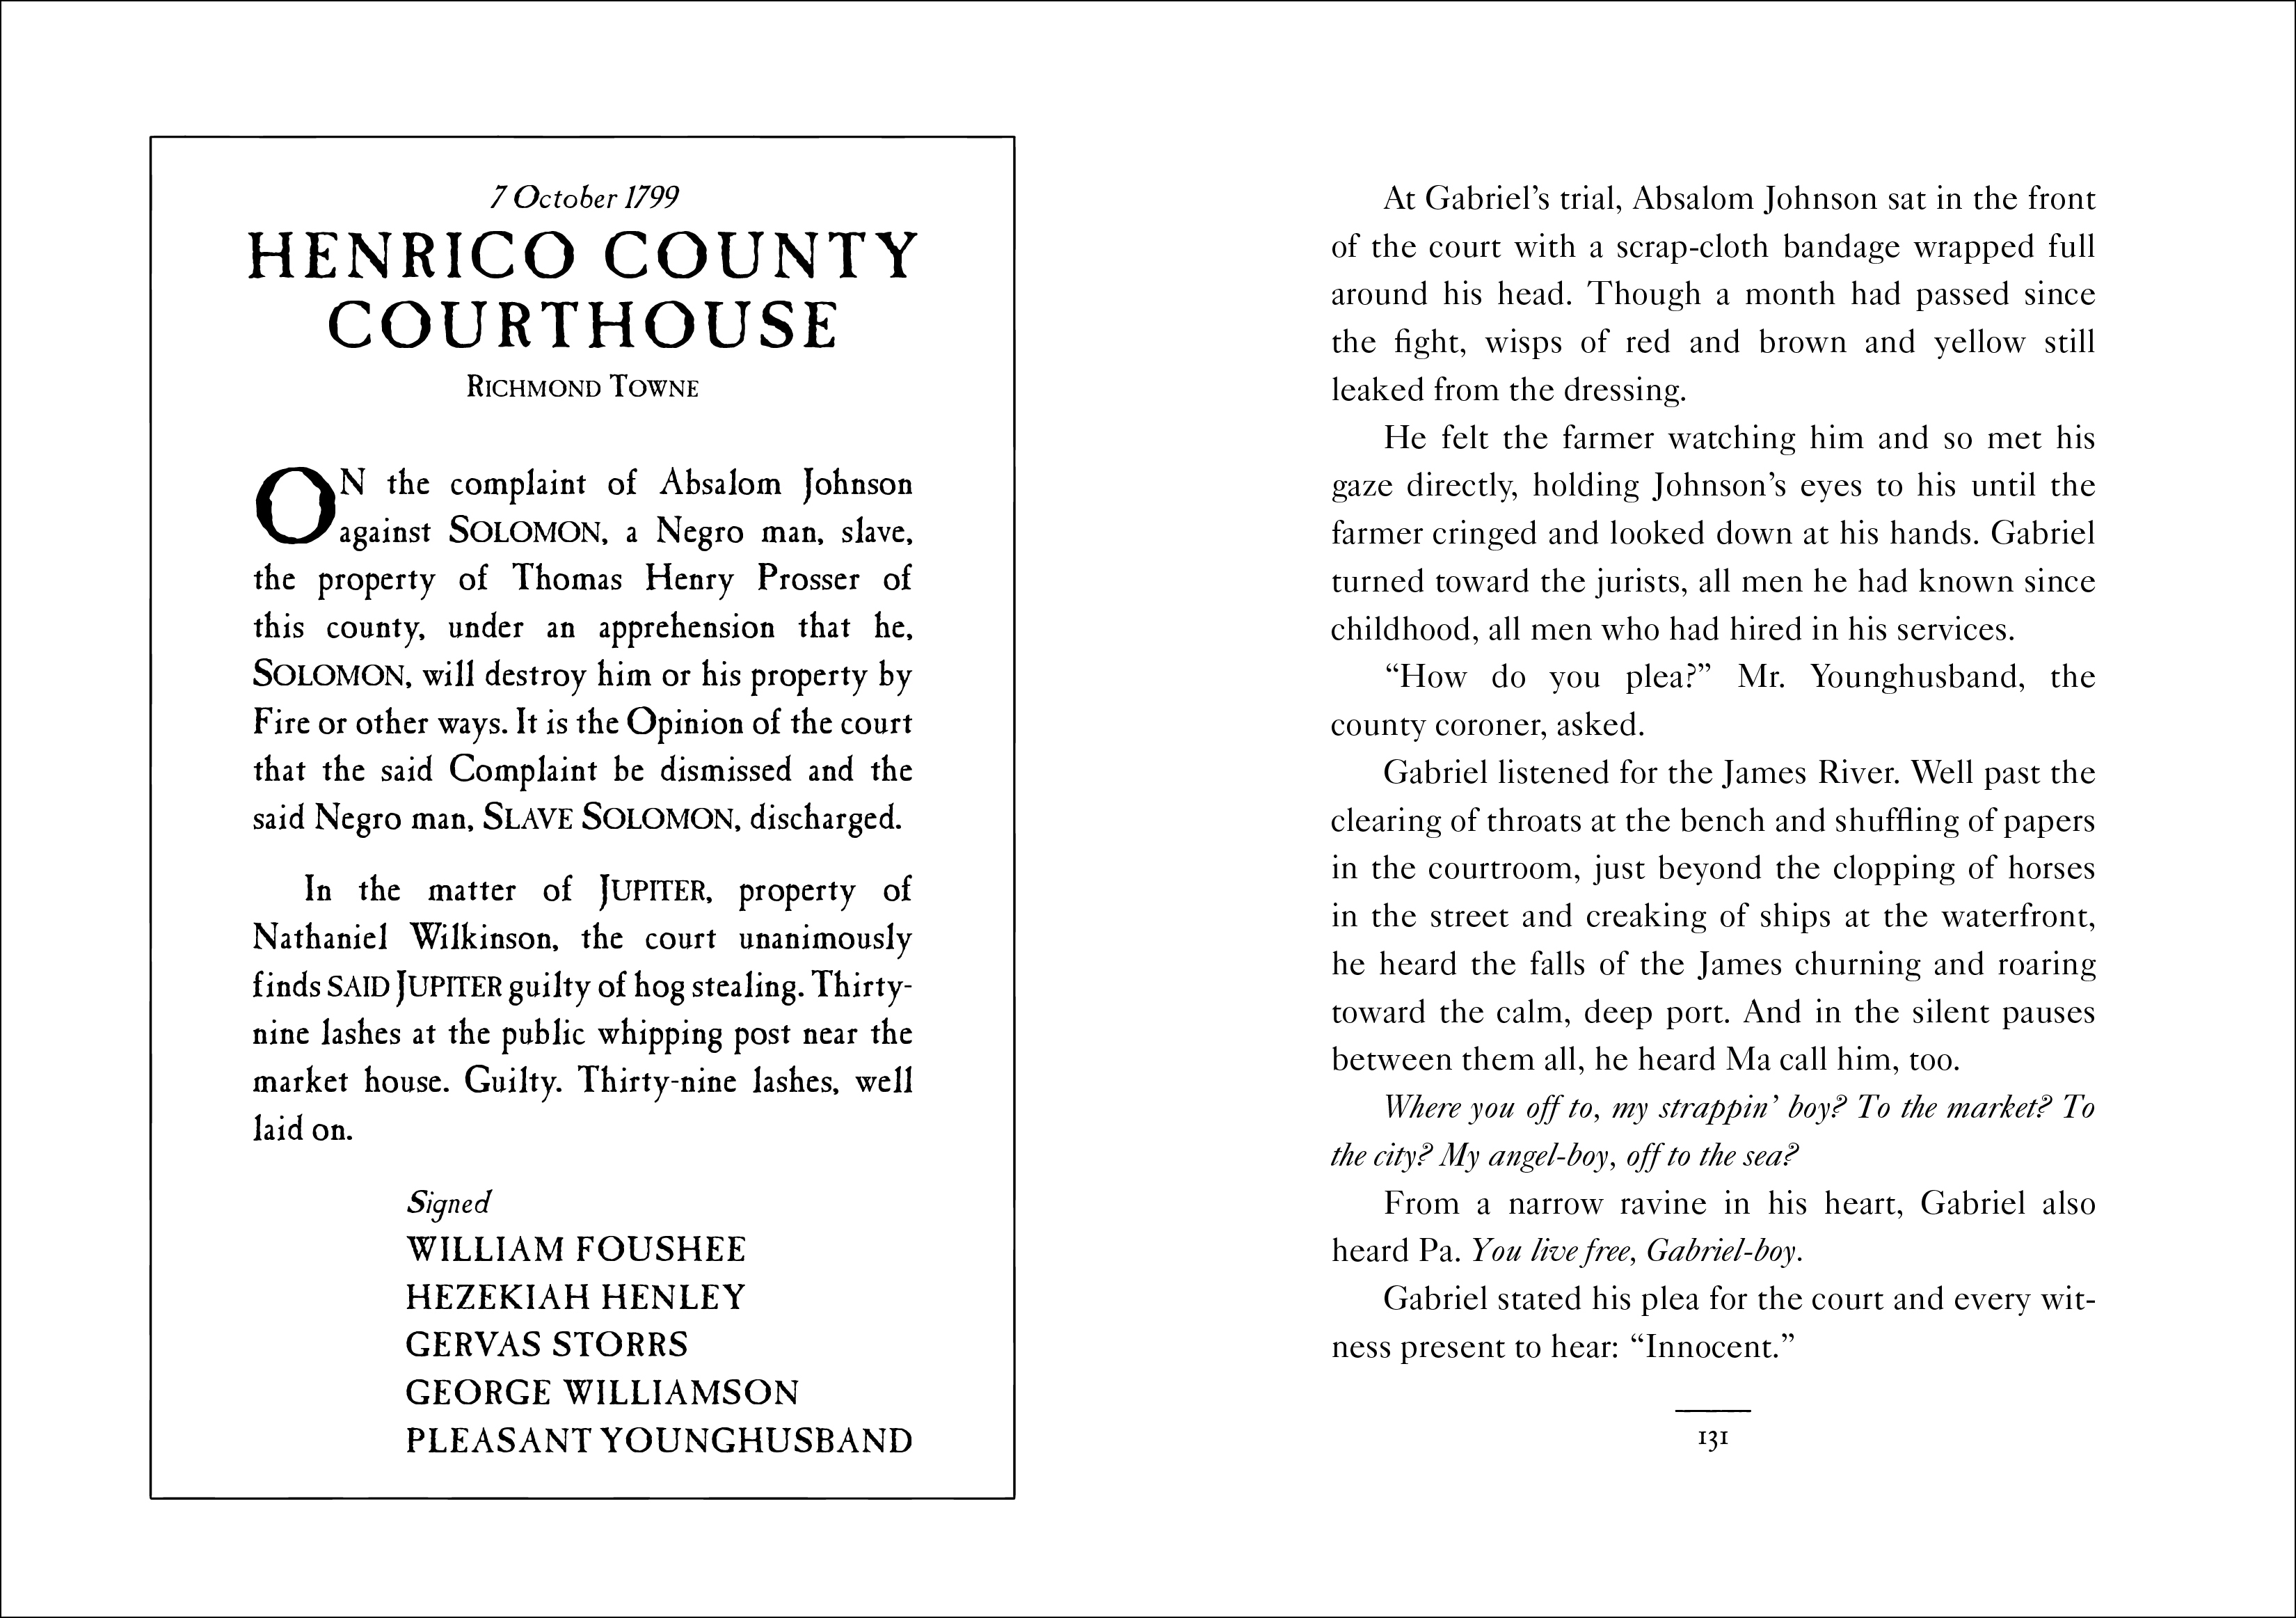 Court document from COME AUGUST, COME FREEDOM